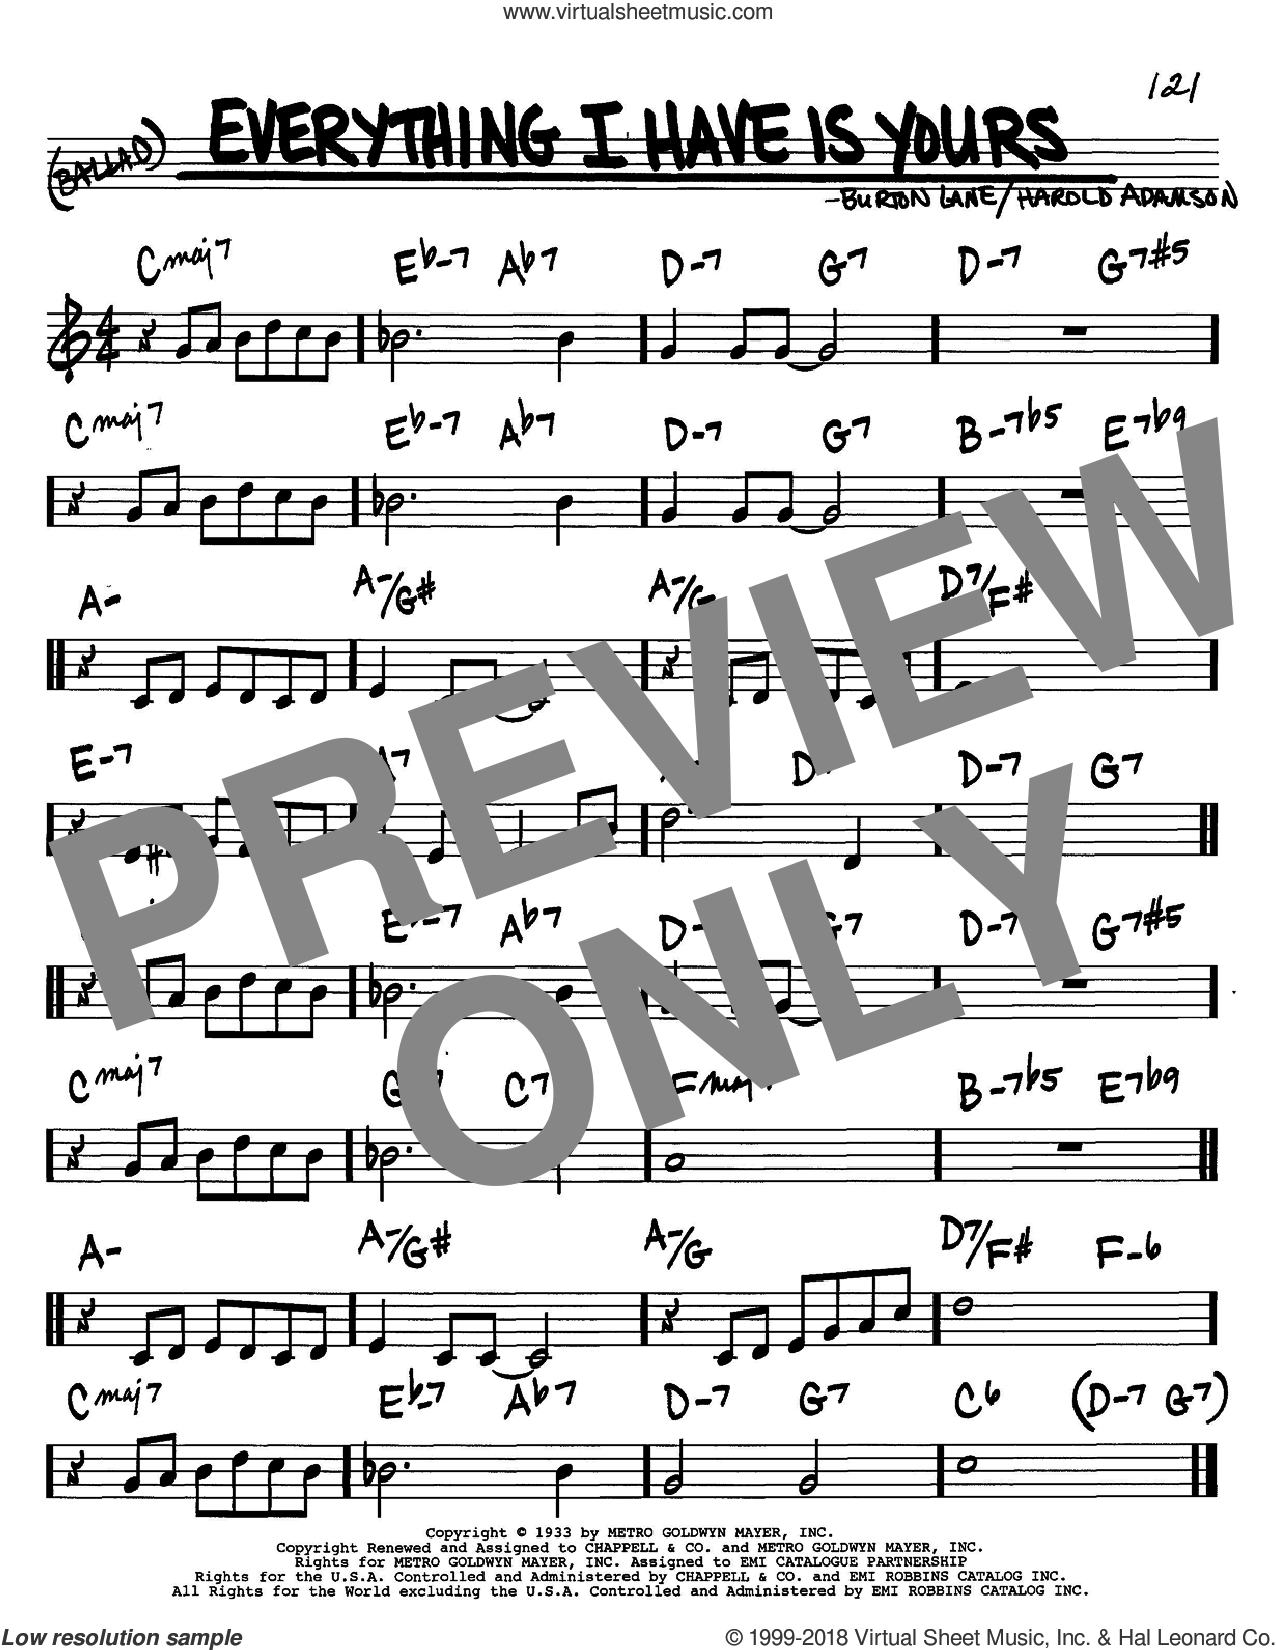 Everything I Have Is Yours sheet music for voice and other instruments (C) by Burton Lane